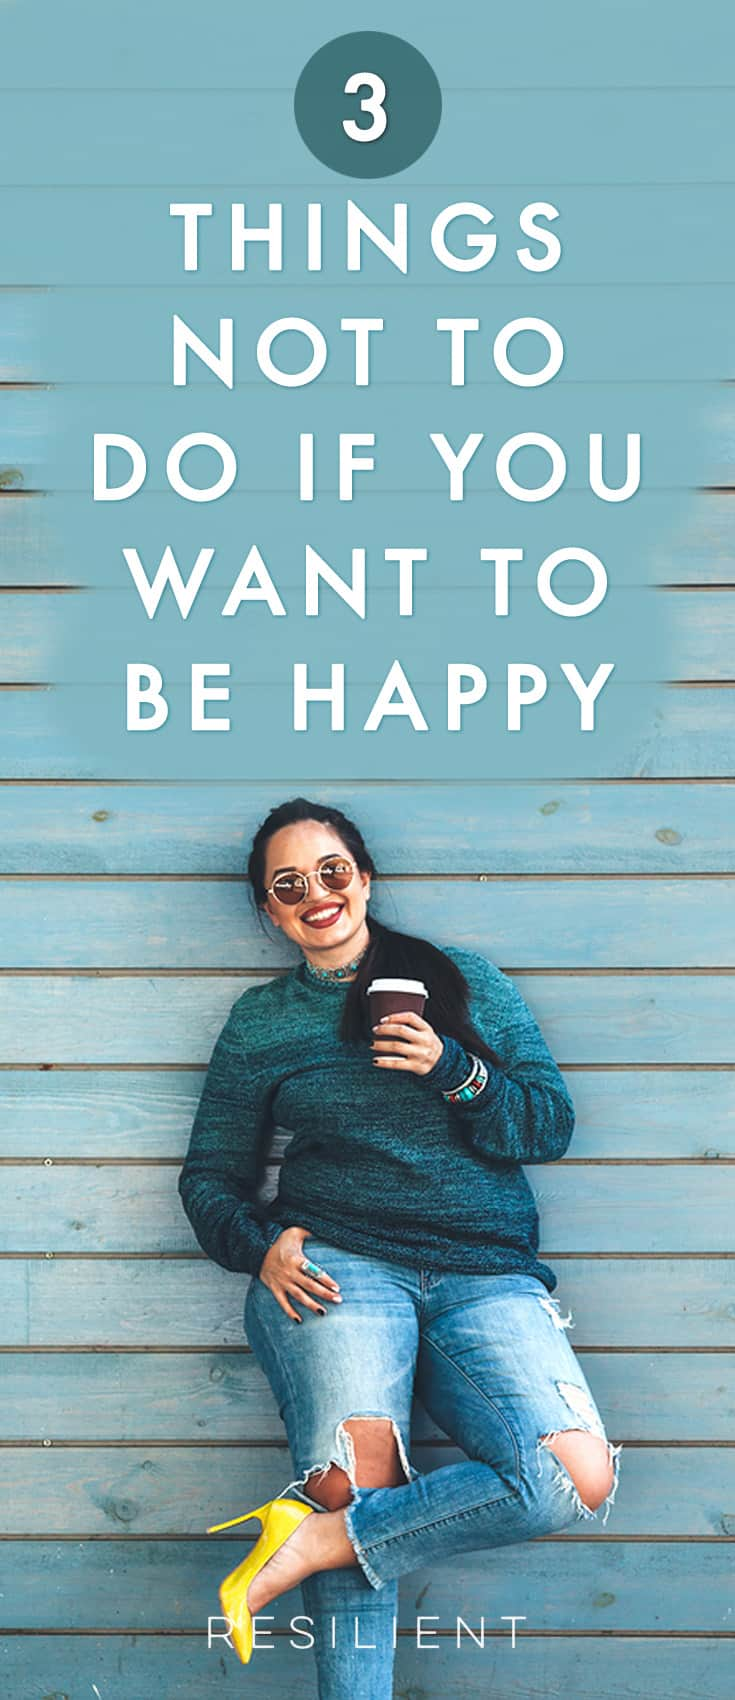 You want to be happy, who doesn't? However, you might engage in unhelpful behaviors that thwart your success. Whether you procrastinate, feed negative self-talk, or don't rest your mind, you lower your potential to create happiness.  Here are 3 things not to do if you want to be happy.